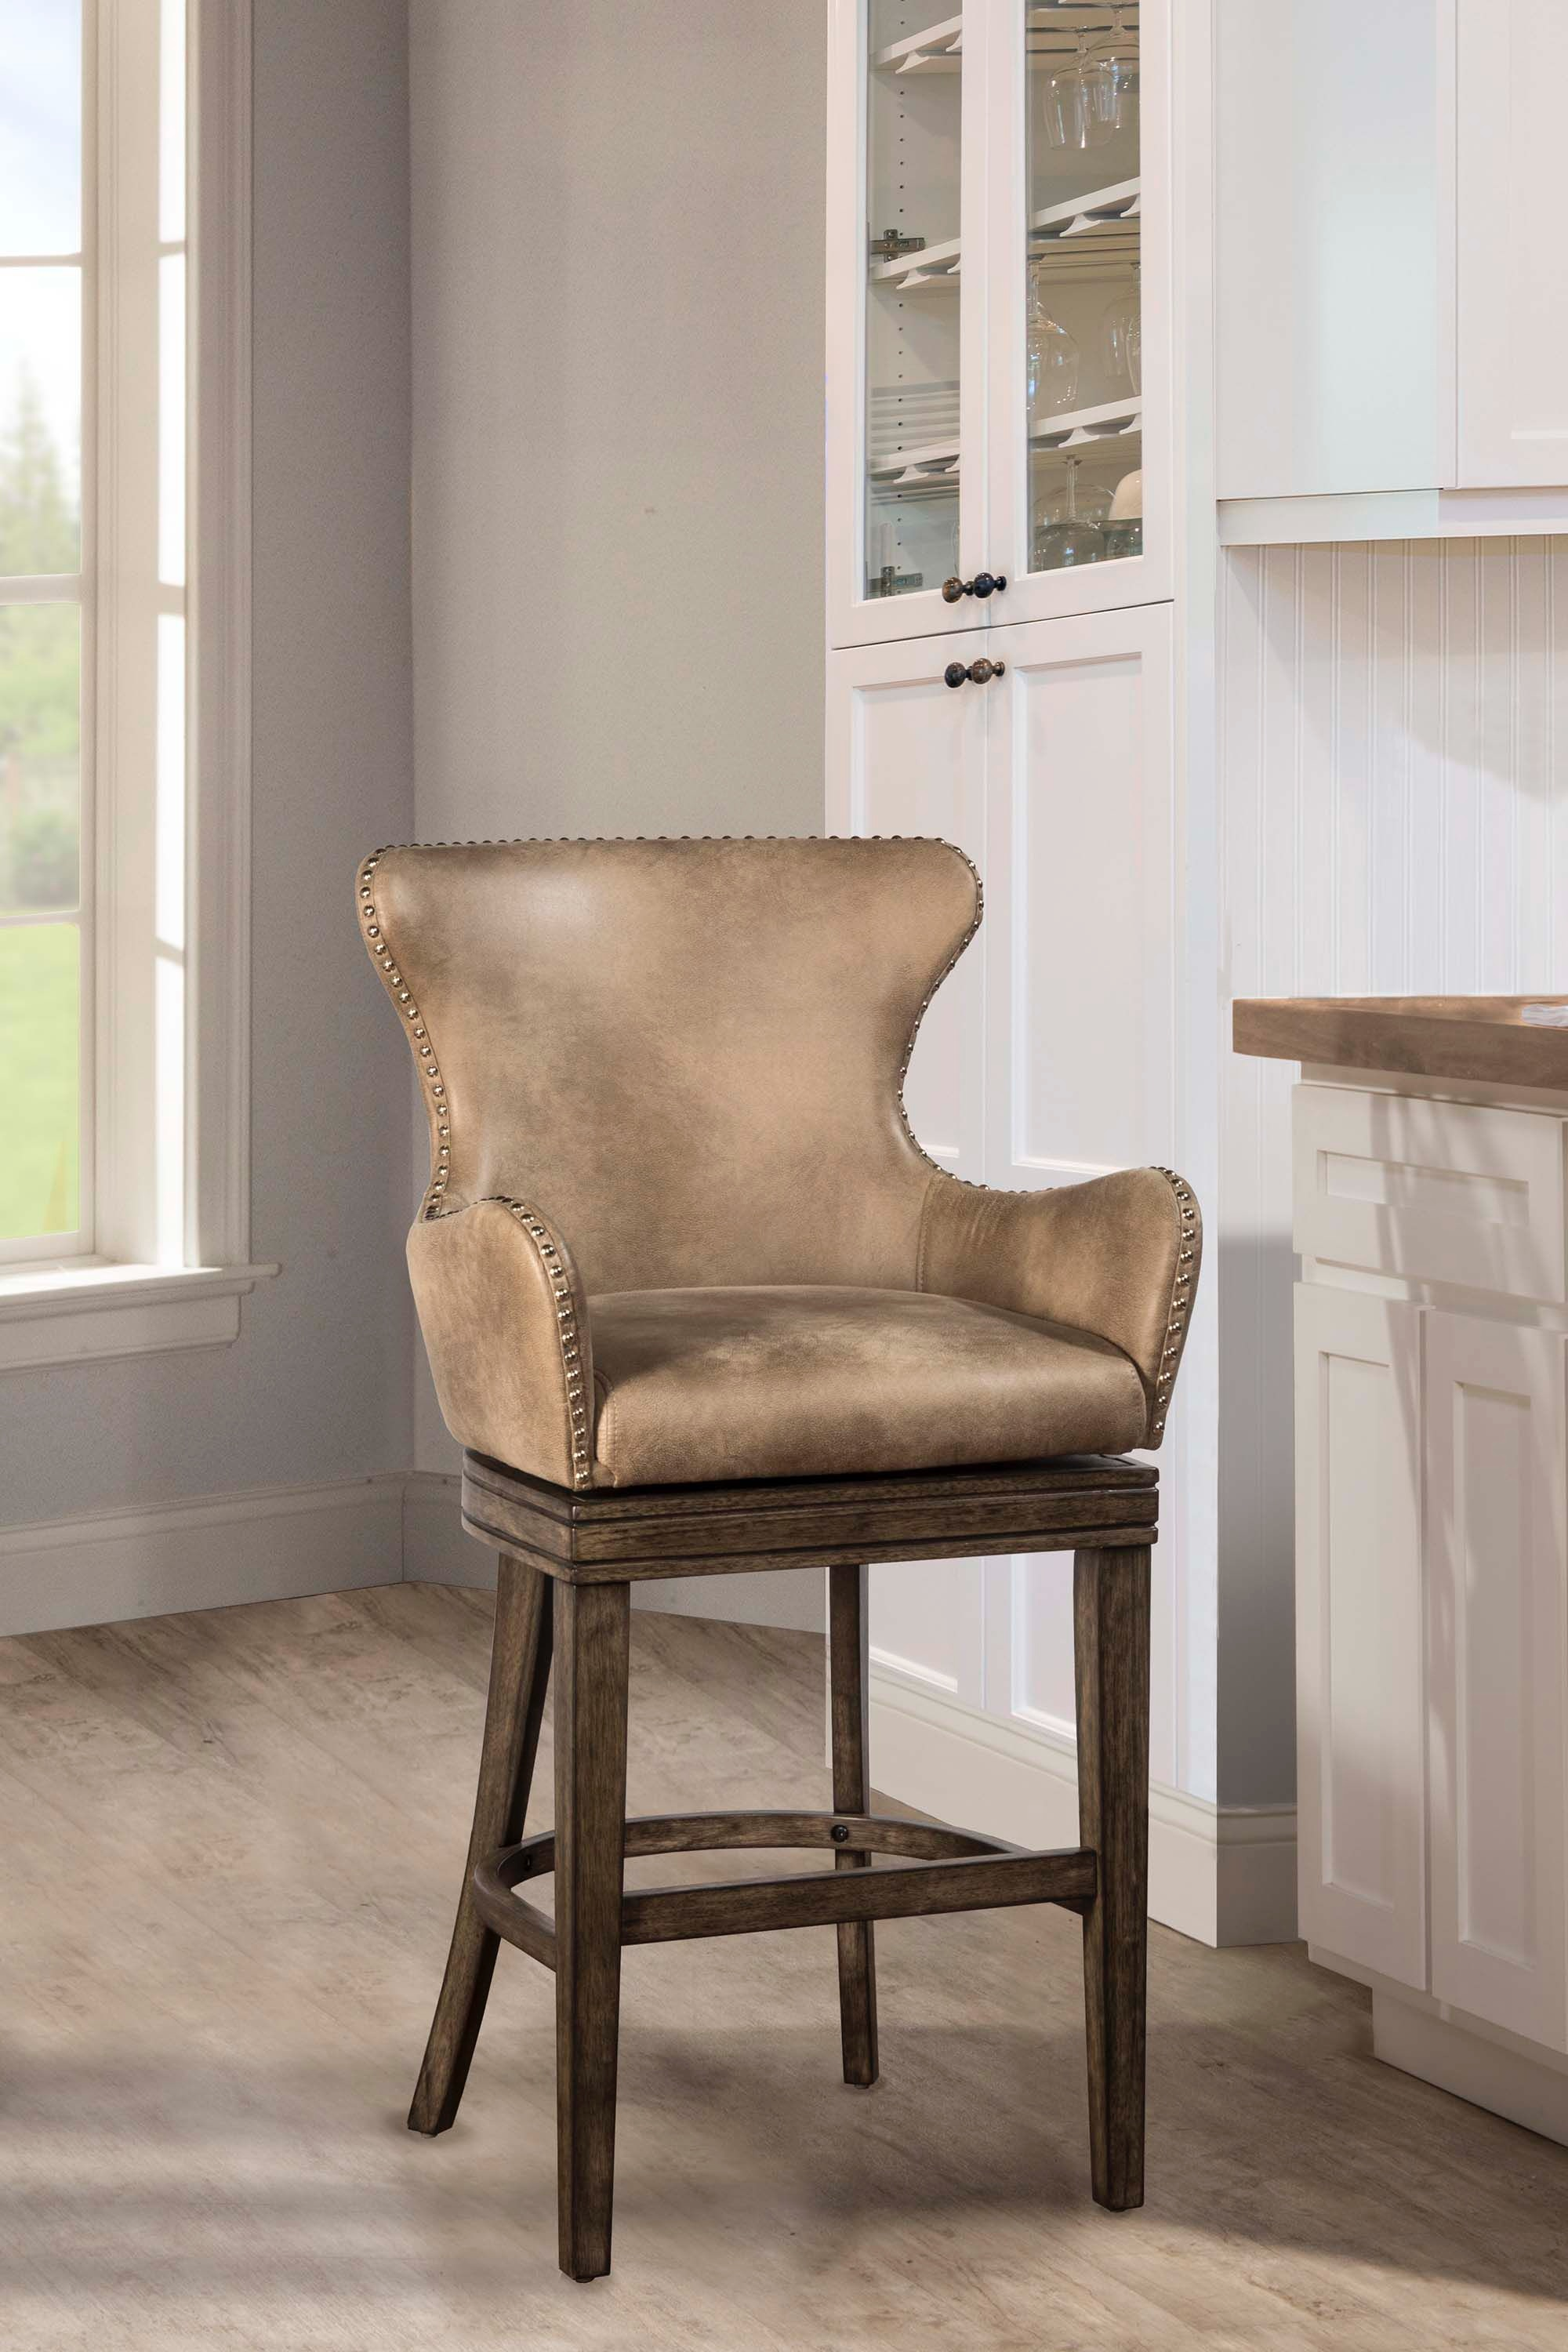 Hillsdale Furniture Bar And Game Room Caydena Swivel Counter Stool 4346 826  At Naturwood Home Furnishings